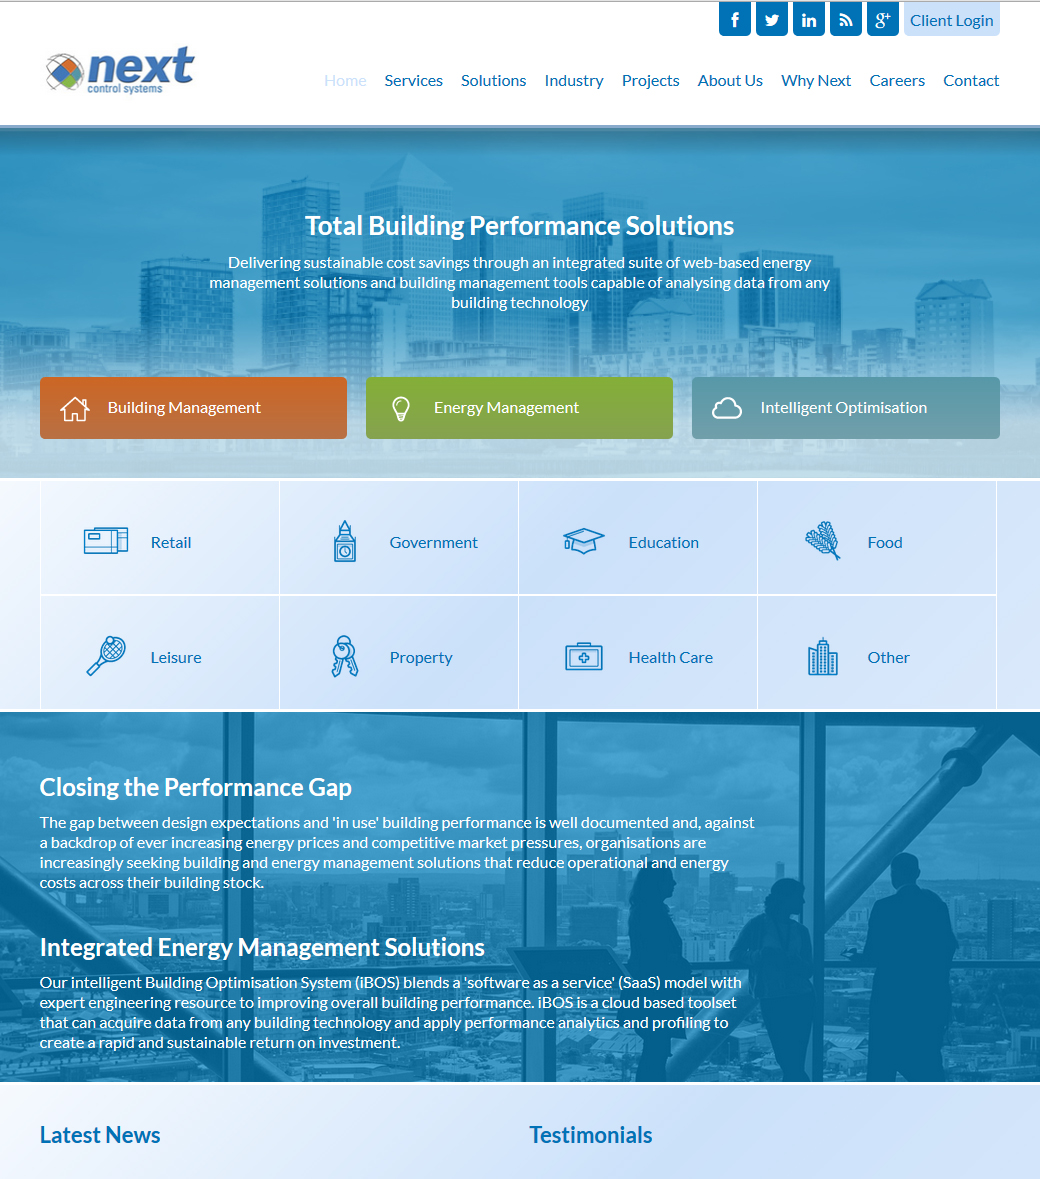 Next Intelligent Building Optimisation responsive design website